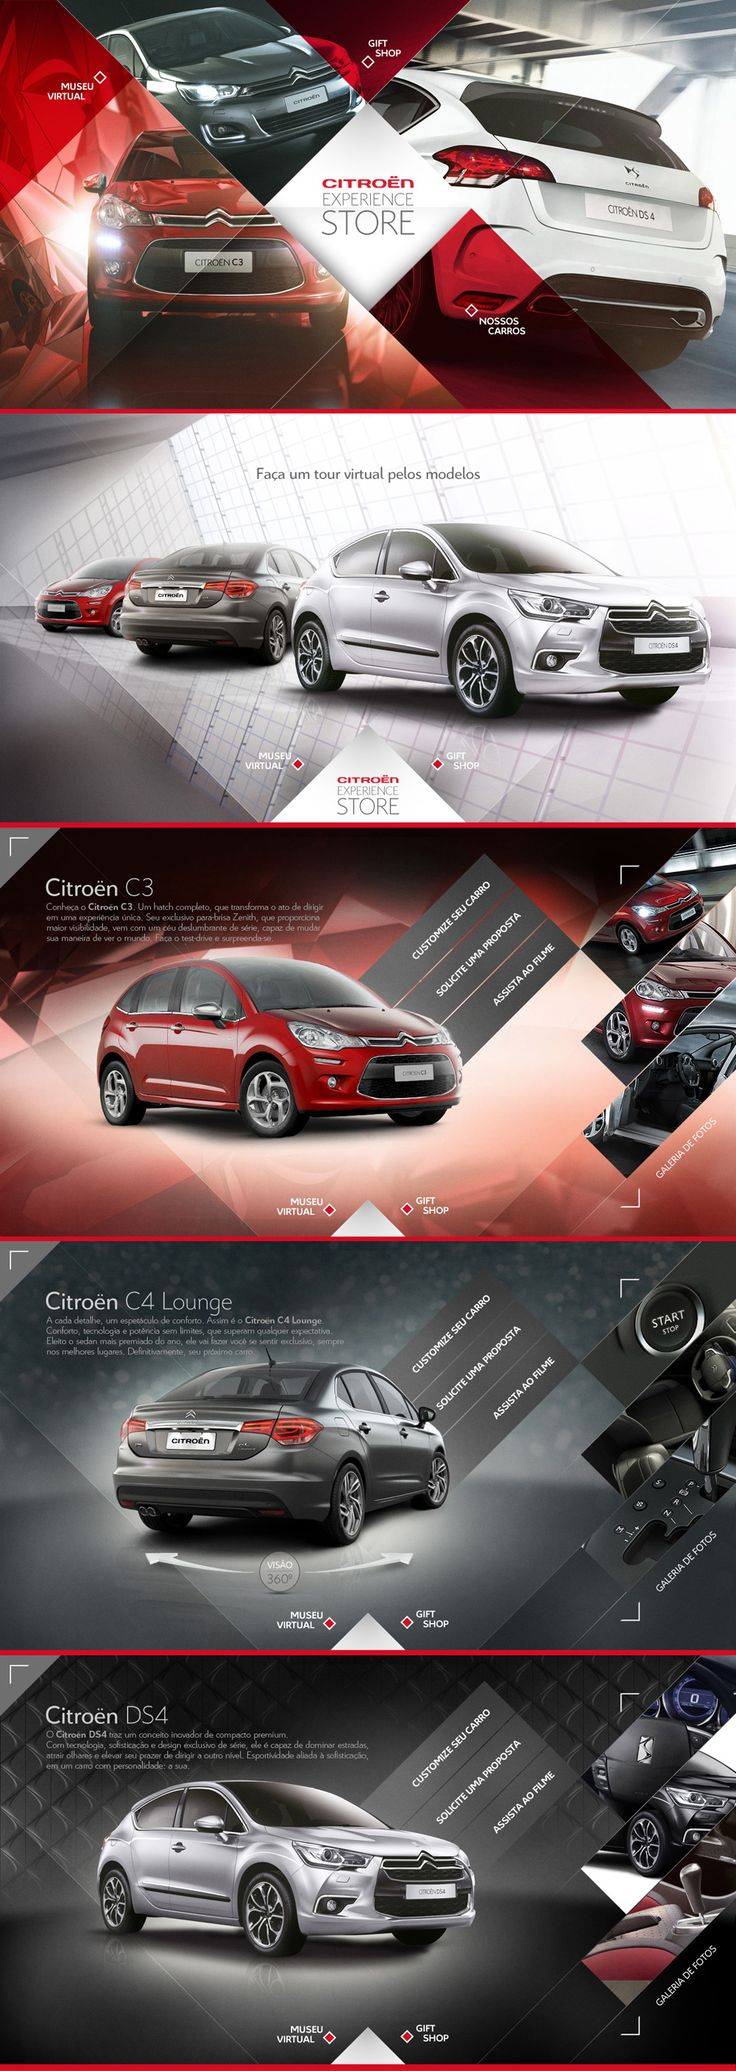 Citroën Experience Store for Xbox